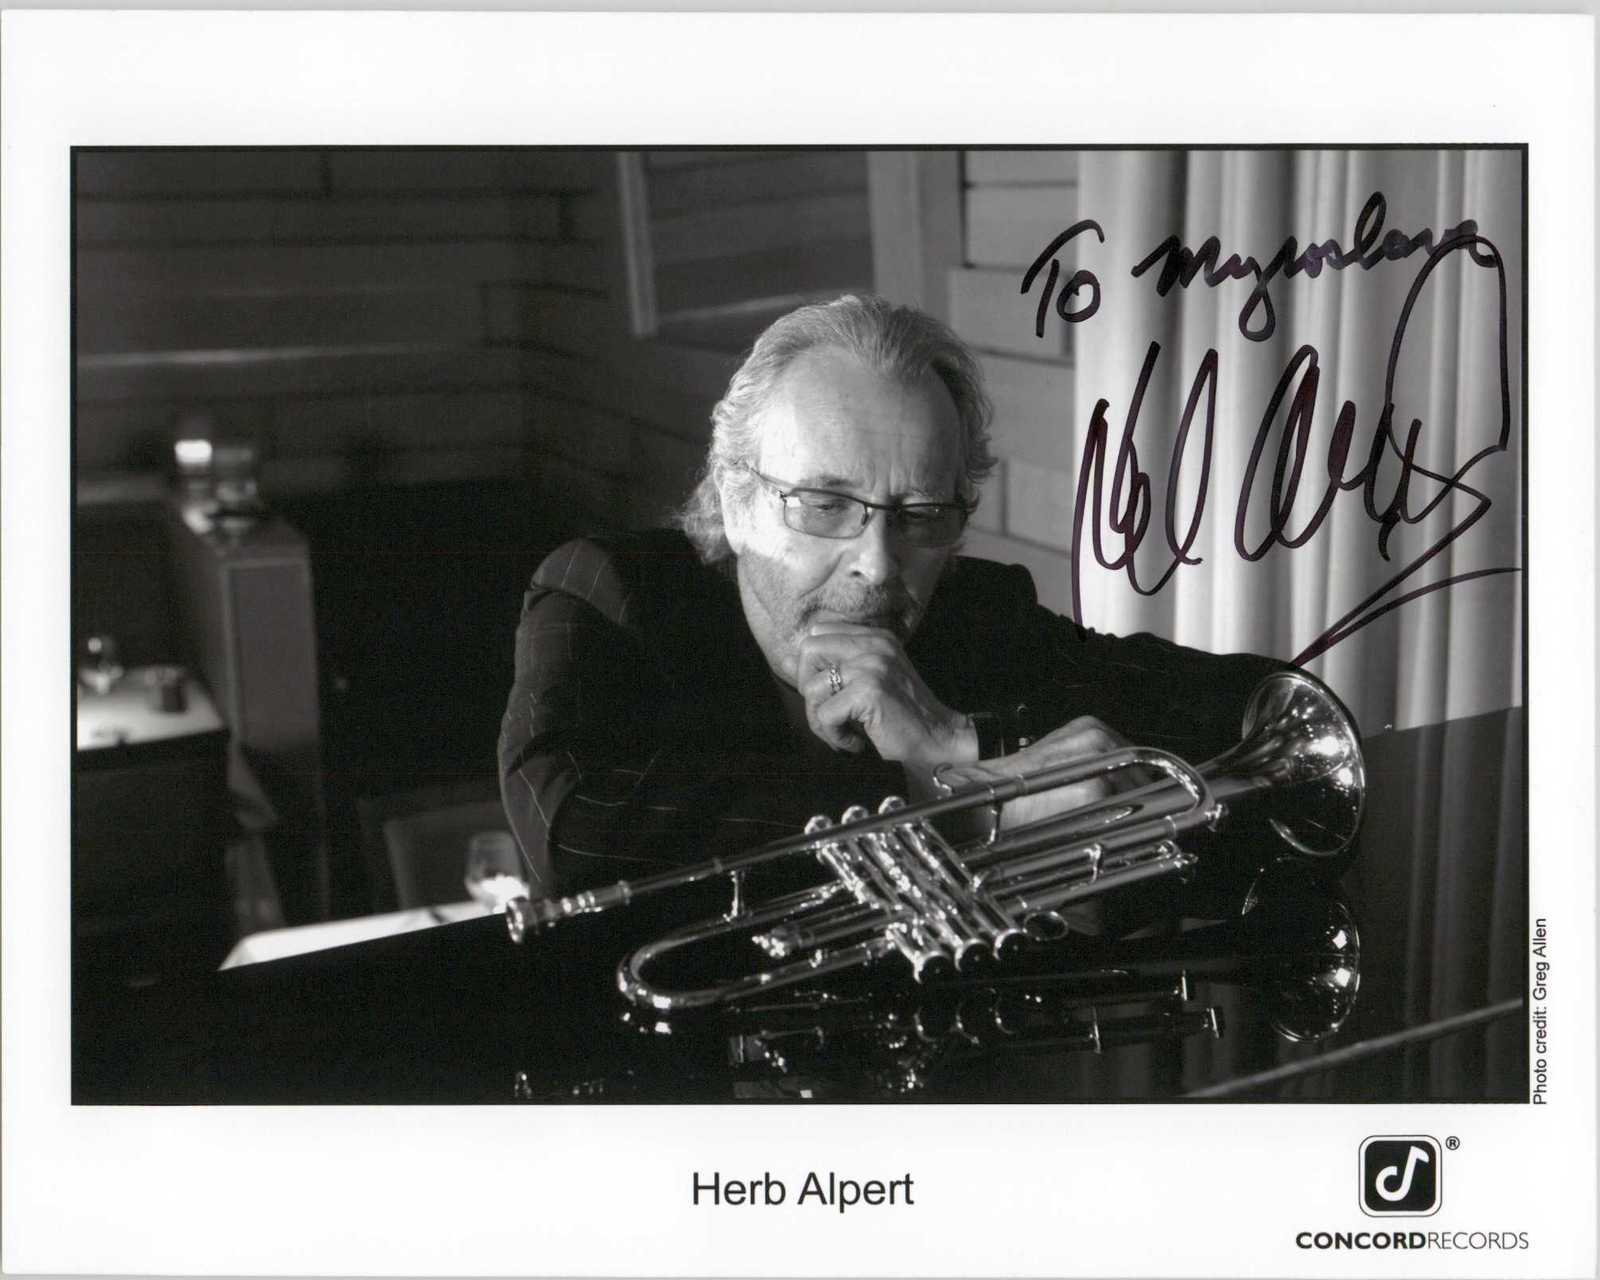 Primary image for Herb Alpert Signed Autographed Glossy 8x10 Photo